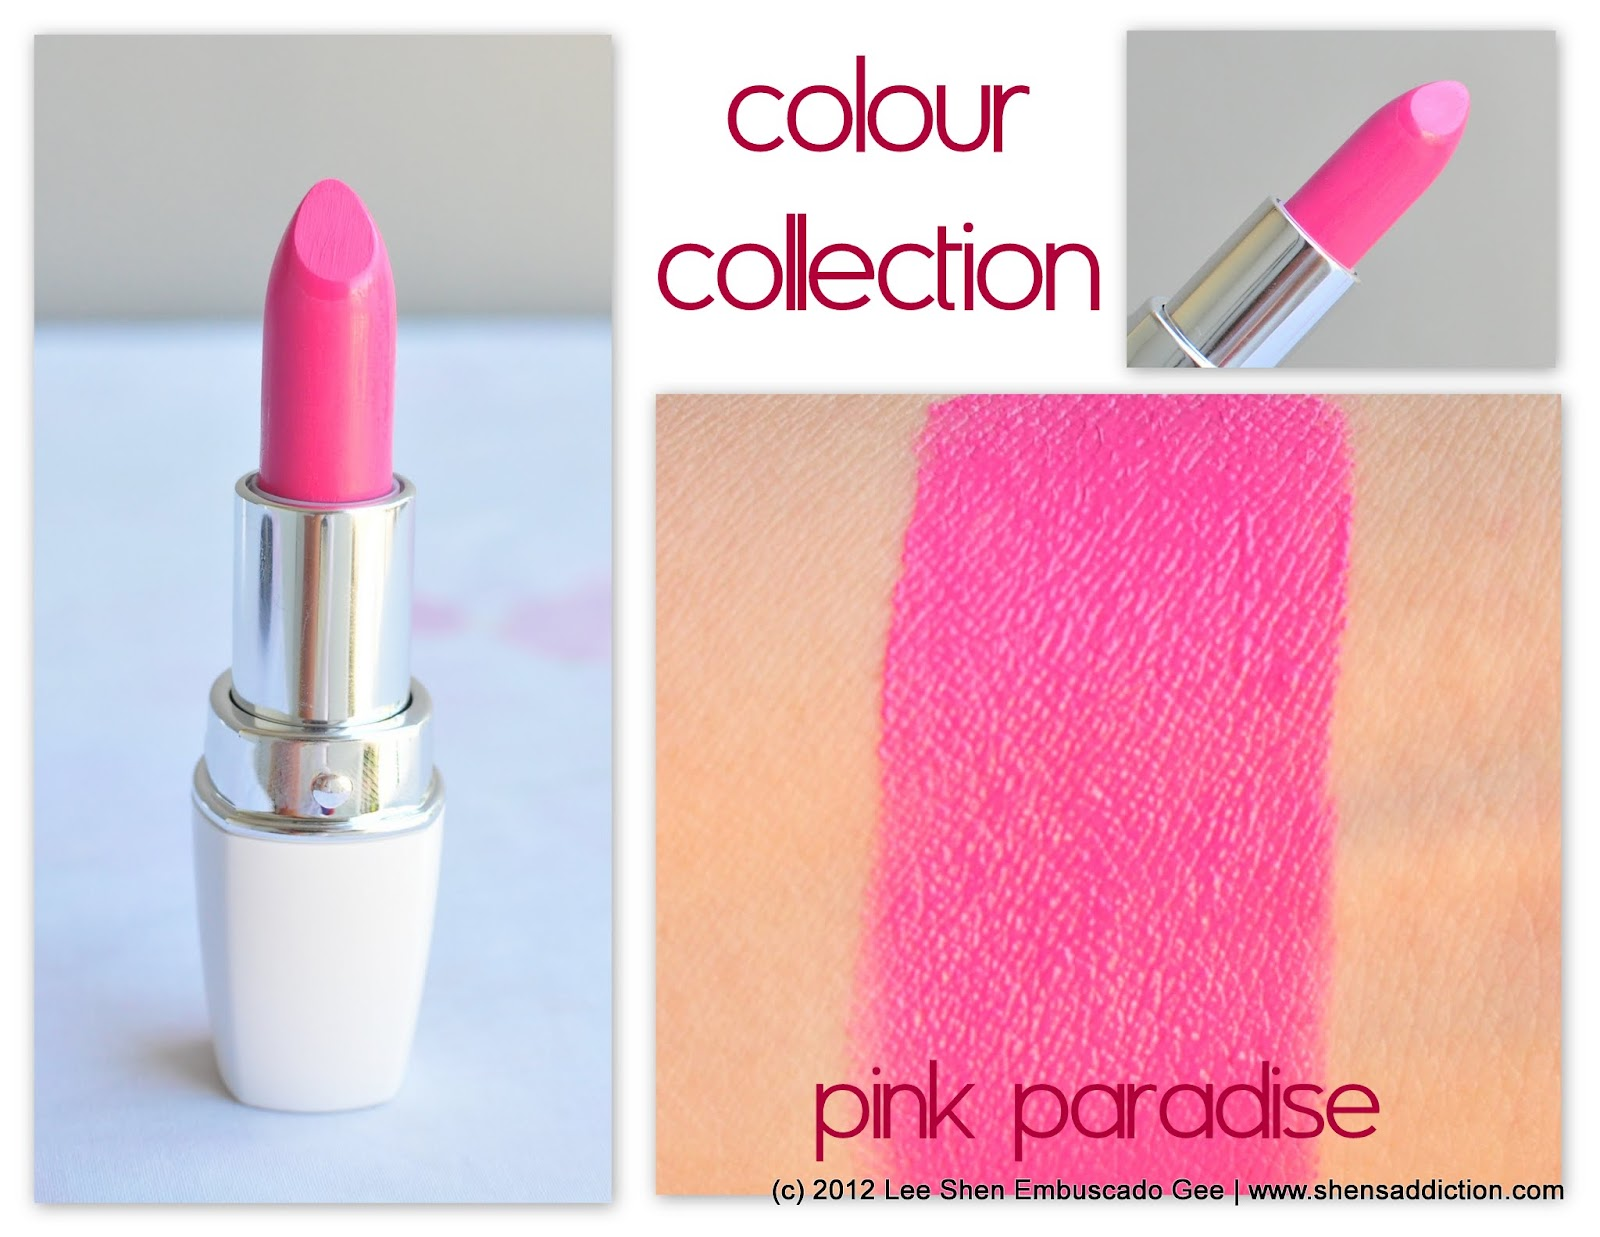 Colour Collection Moisture Intense Lipstick In Paradise Pink Is An Opaque Lip Color It S Moisturizing And Lasts At Least Up To 2 4 Hours On